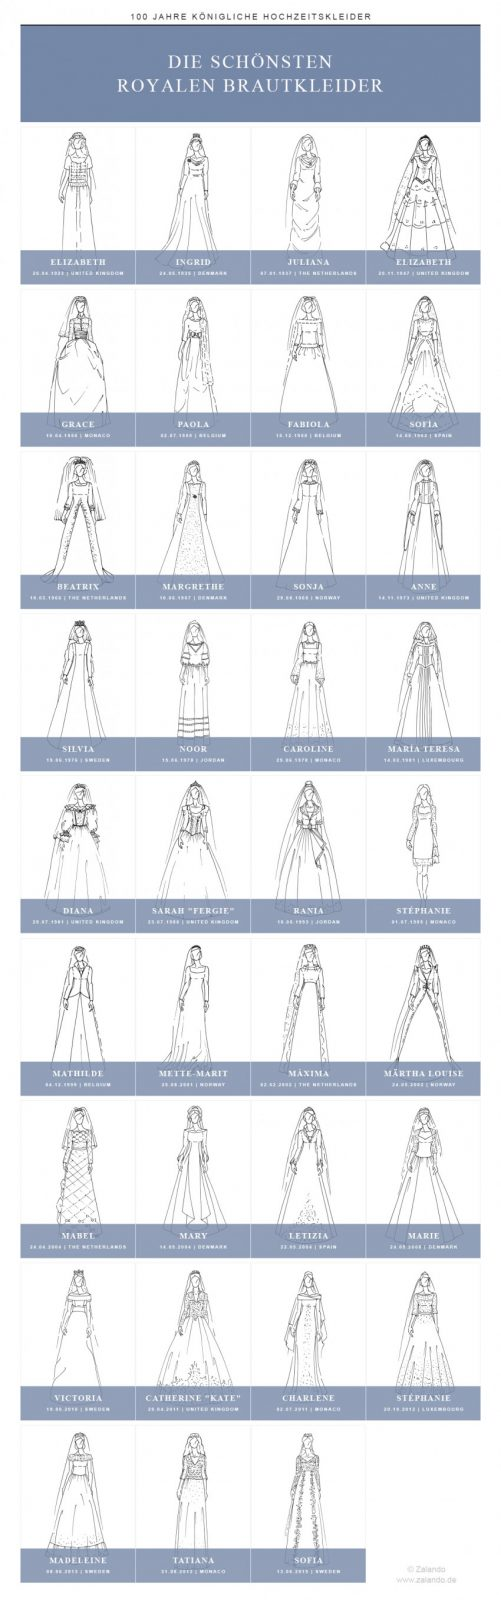 Royal_Wedding_Dresses_Overview_DE